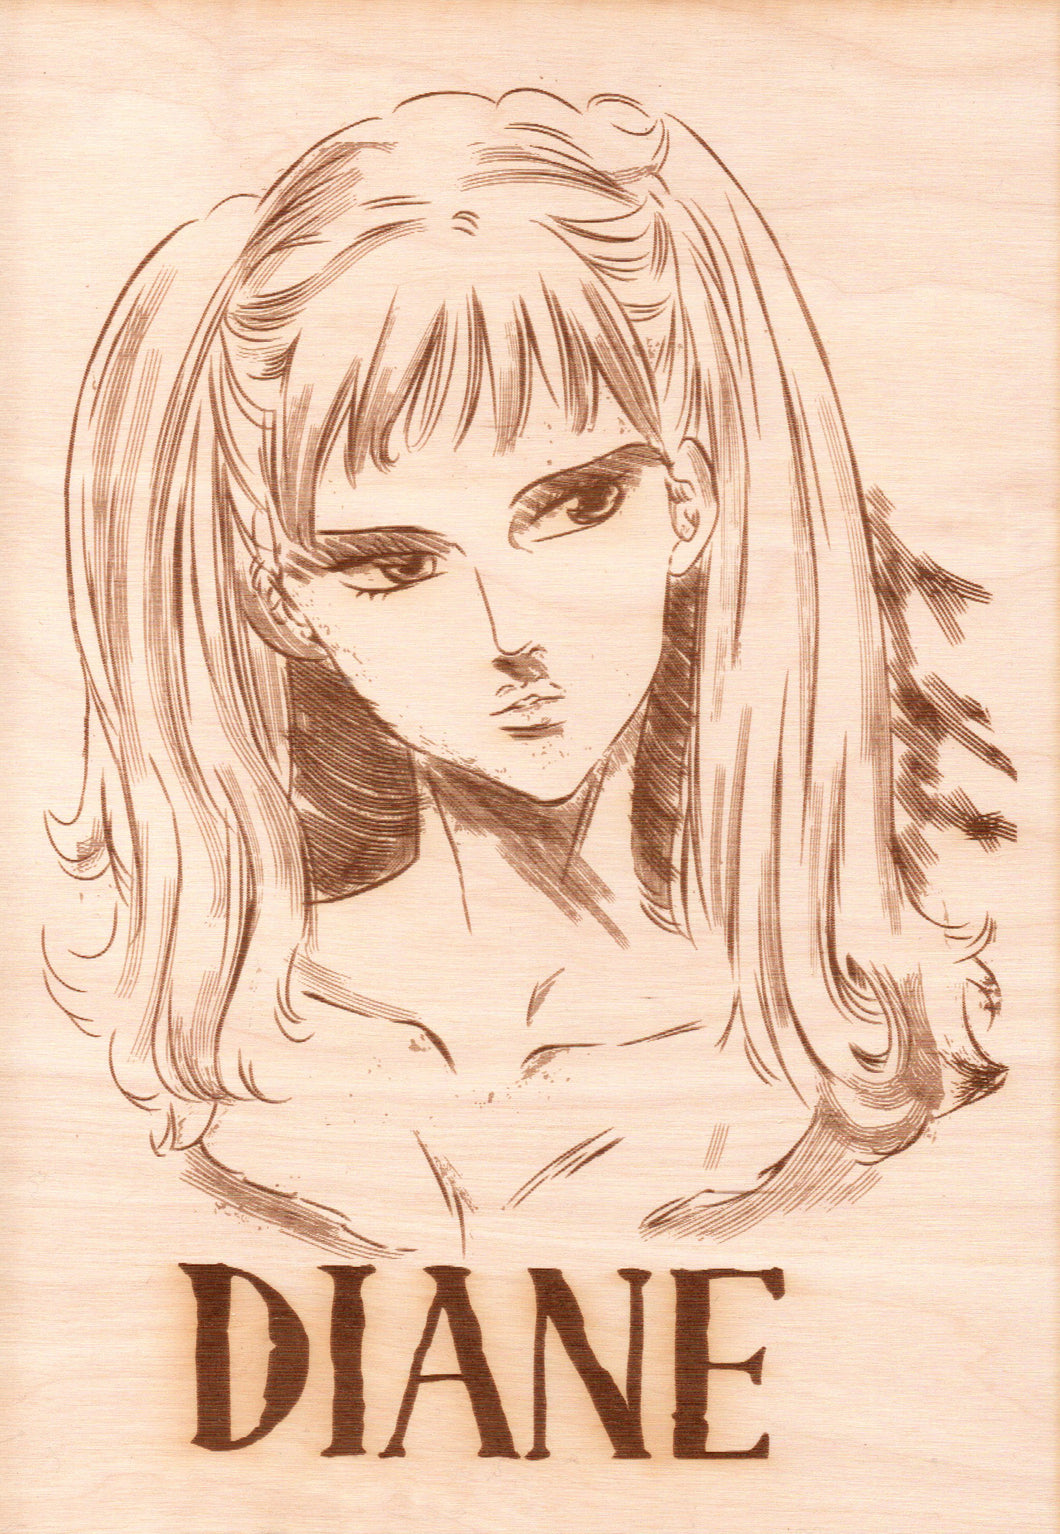 Seven Deadly Sins - Diane Wooden Wanted Poster - TantrumCollectibles.com